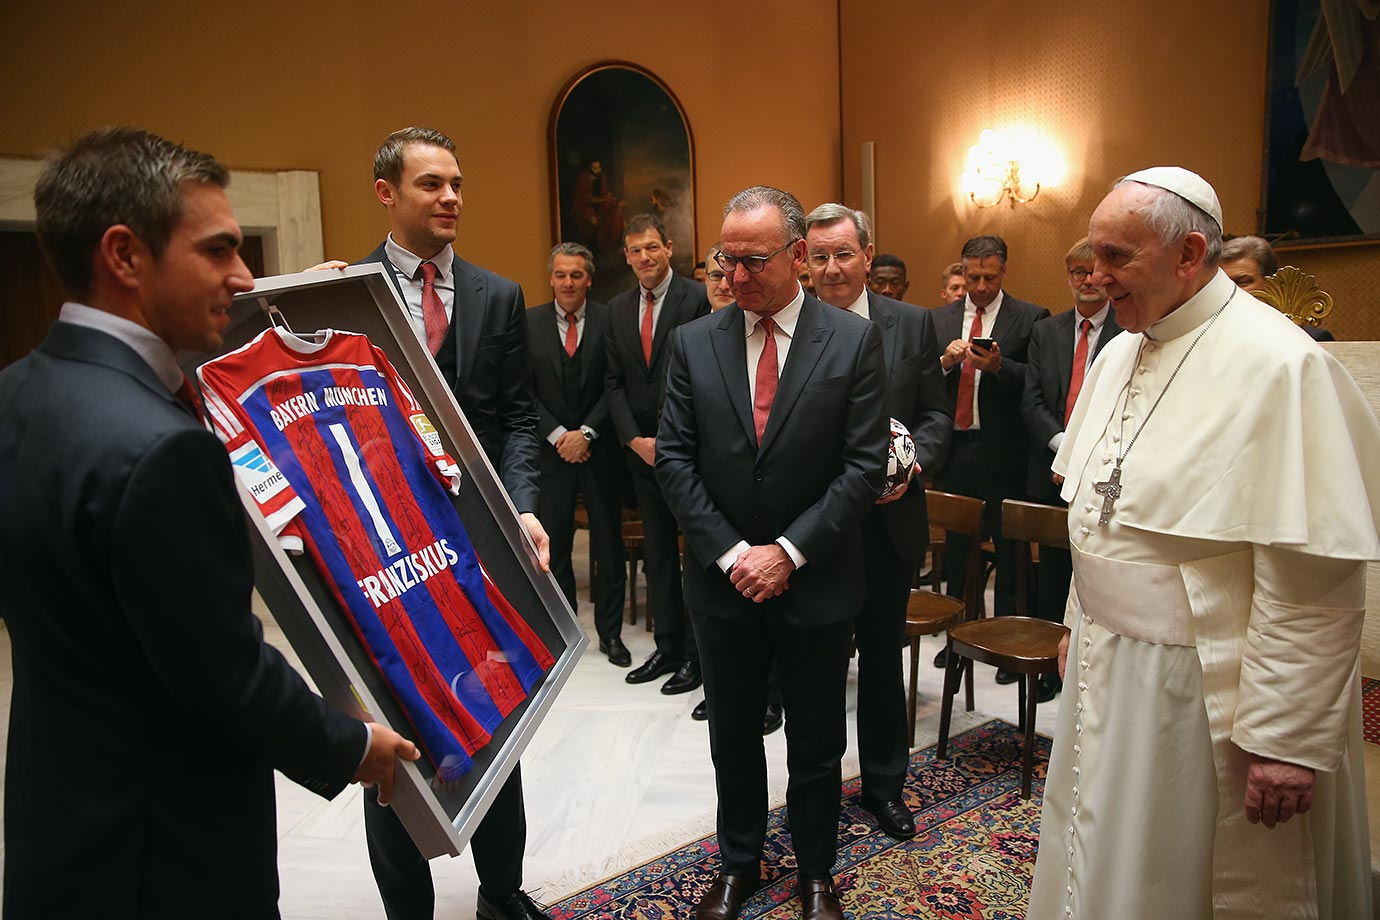 (From left) Philipp Lahm, Manuel Neuer and CEO Karl-Heinz Rummenigge of FC Bayern Muenchen present Pope Francis a team jersey during a private audience at The Vatican October 22, 2014 in Vatican City.